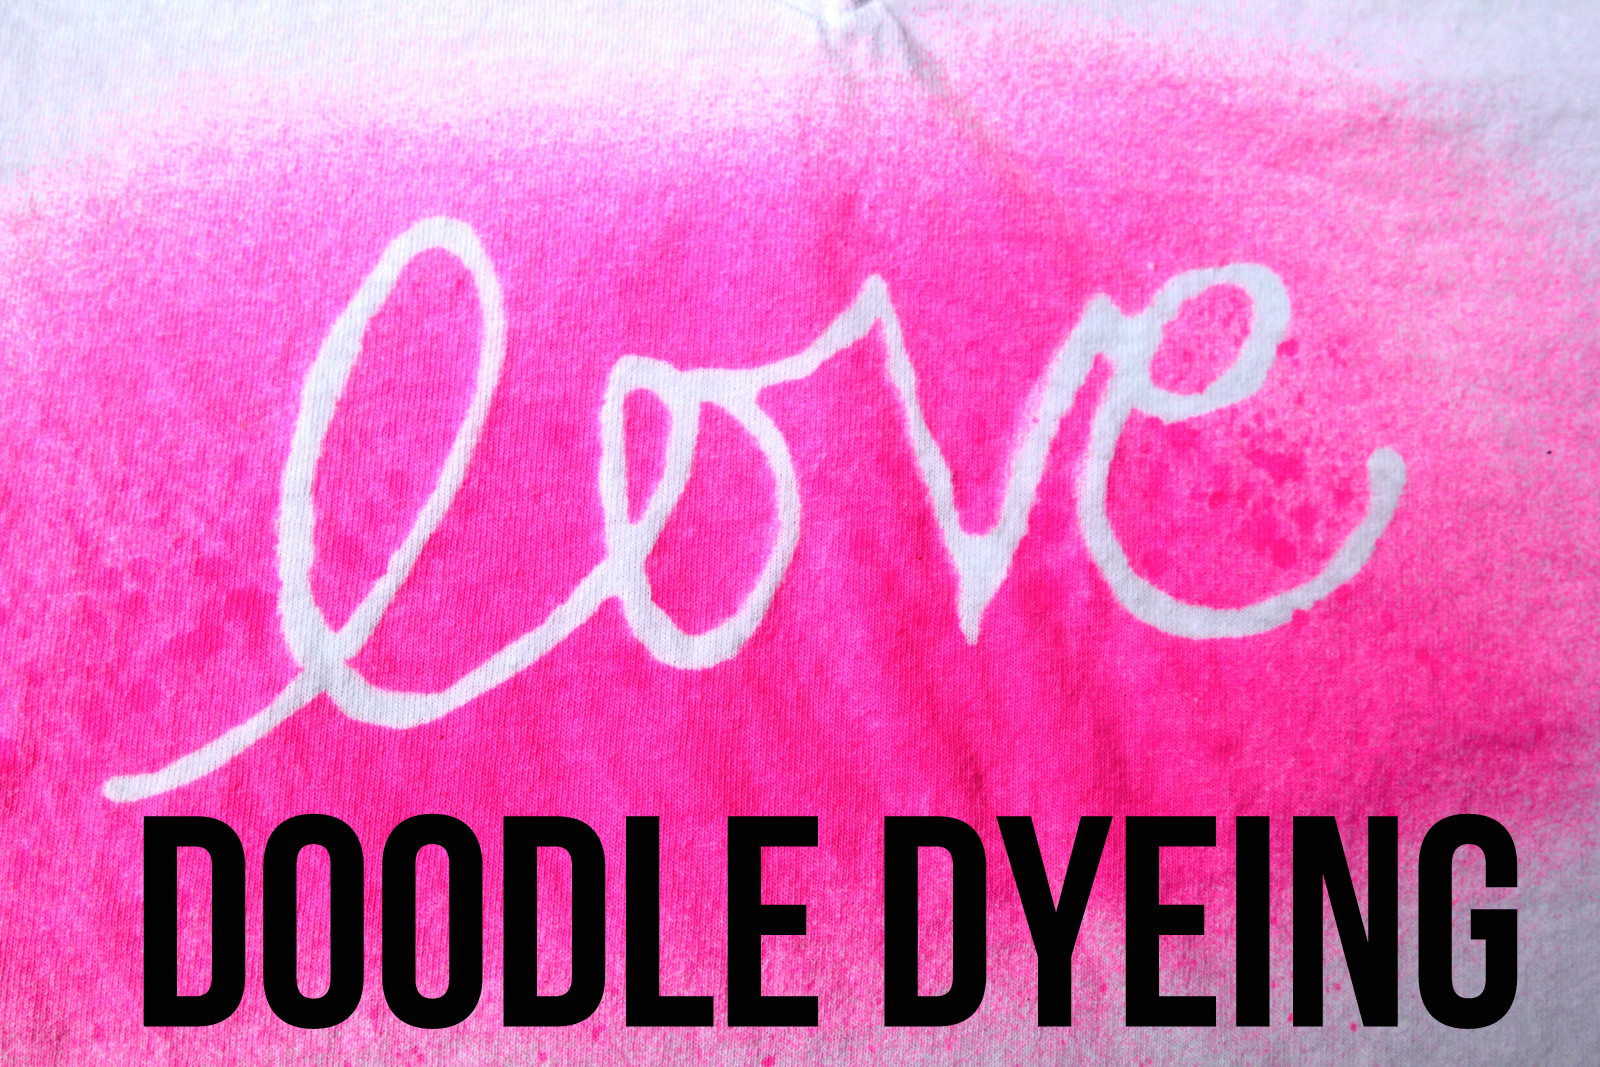 doodle dyeing